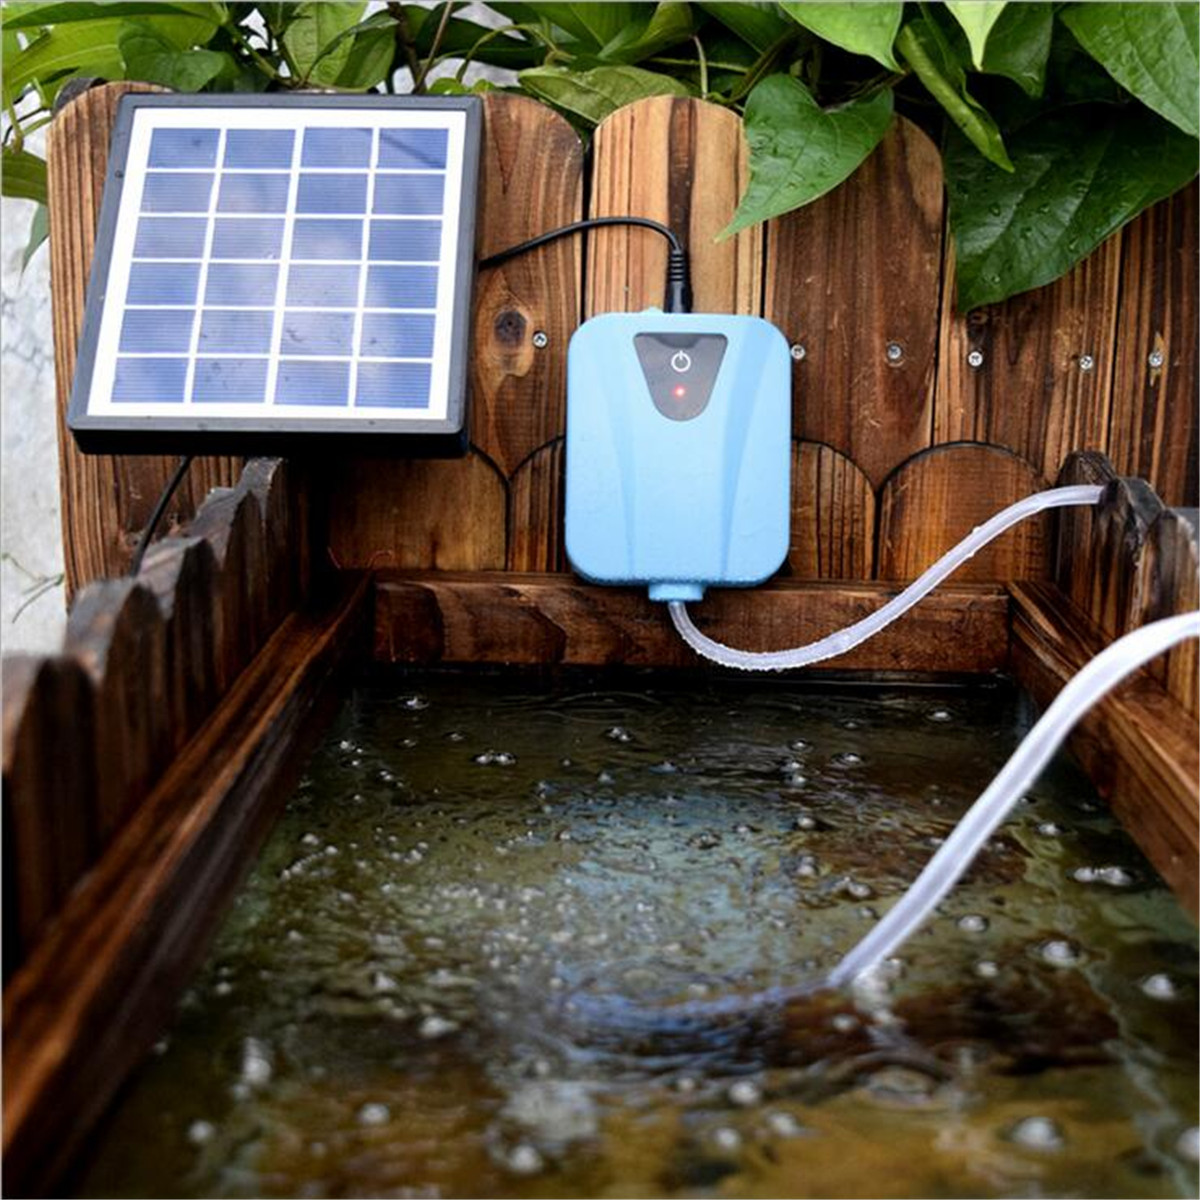 ZHIYANG Solar Powered Panel Air Oxygenator Pond Fish Tank Water Garden Air Pump Outdoorc Metal+Plastic